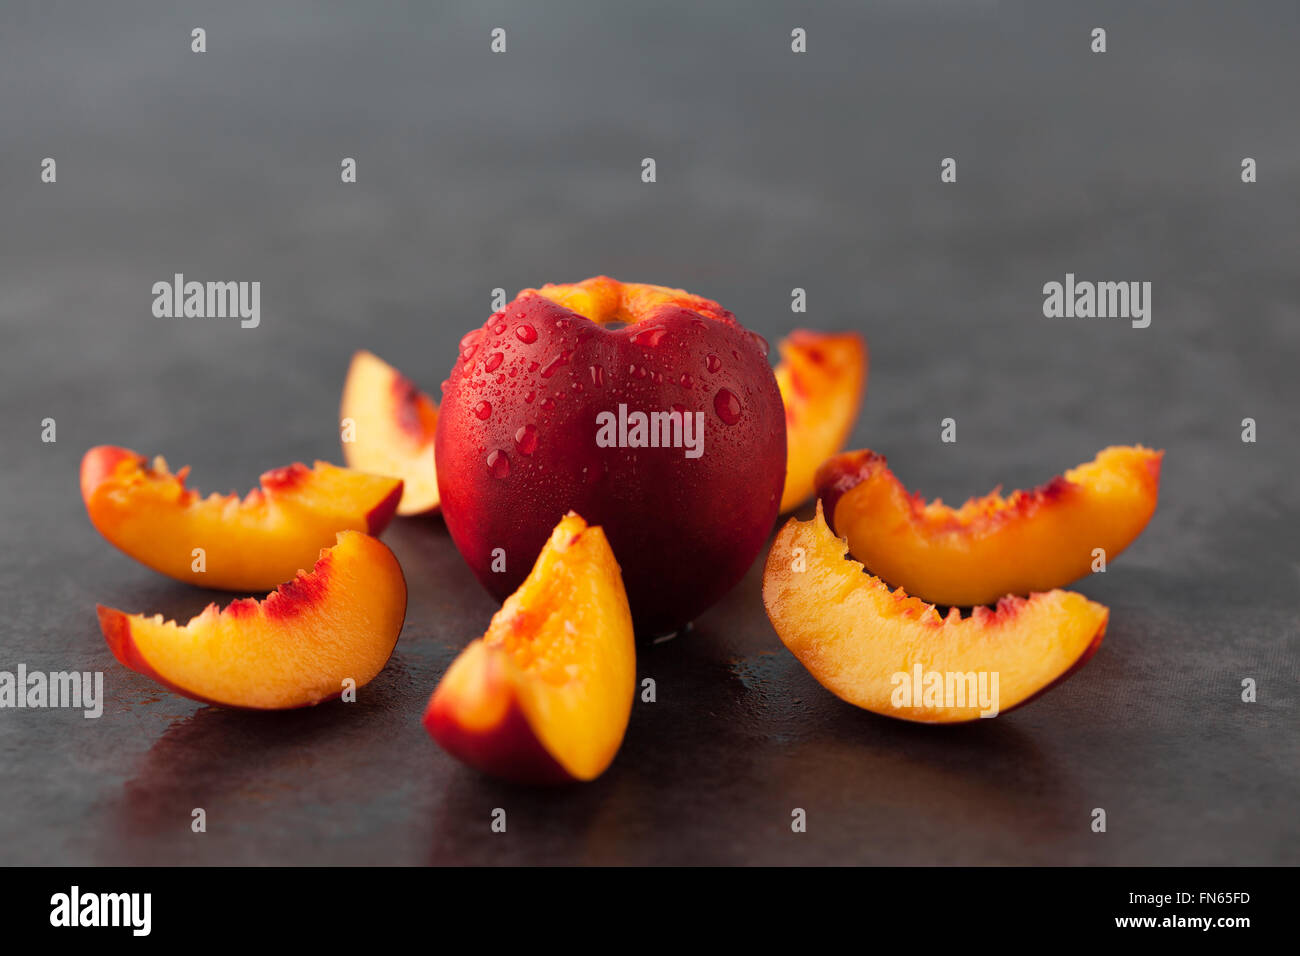 Yellow nectarine peach - whole fruit and slices on dark grungy  background. Shallow depth of field. - Stock Image